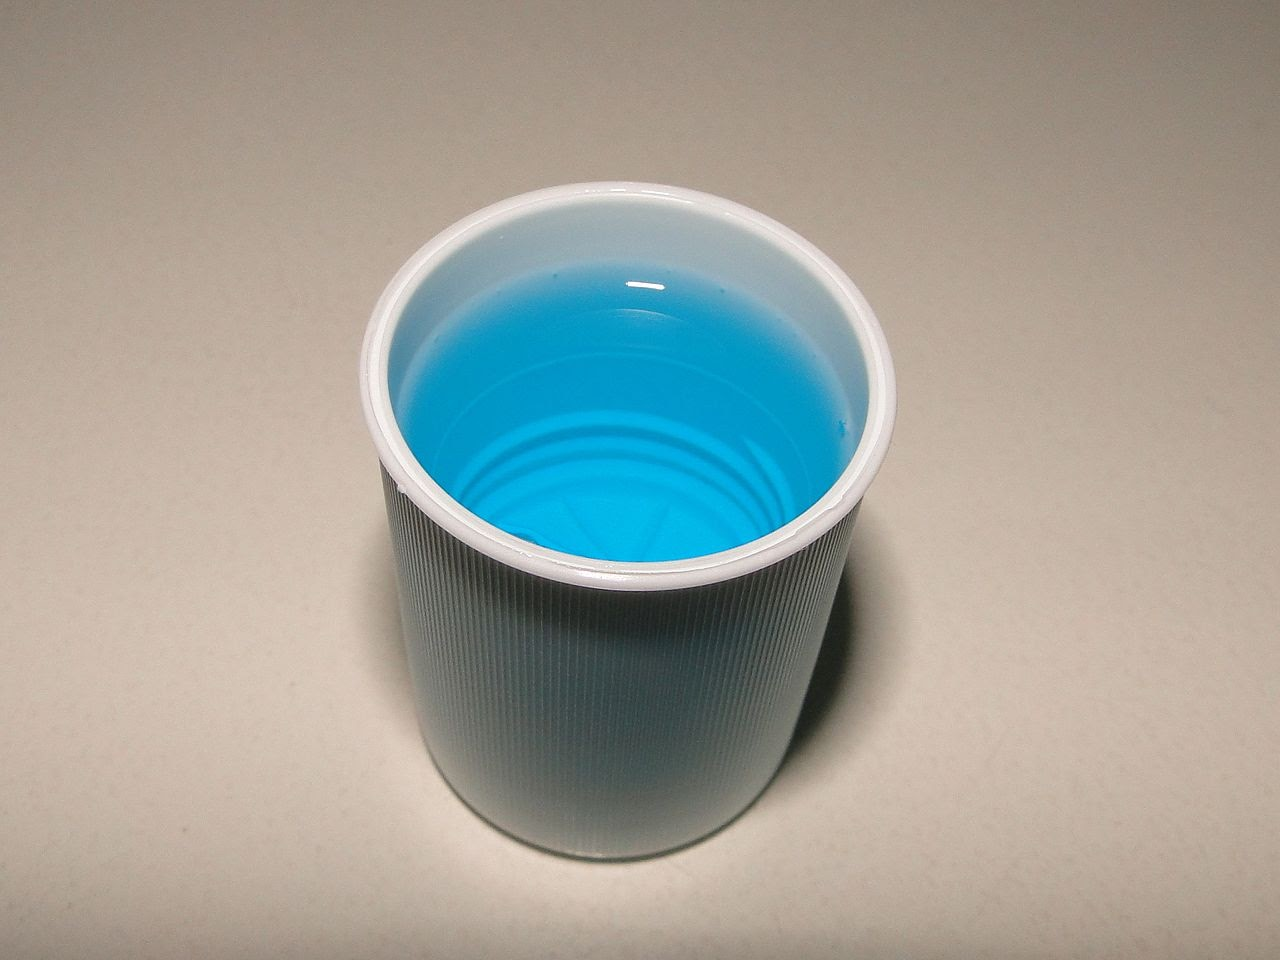 A cup of mouthwash sits waiting to be used.